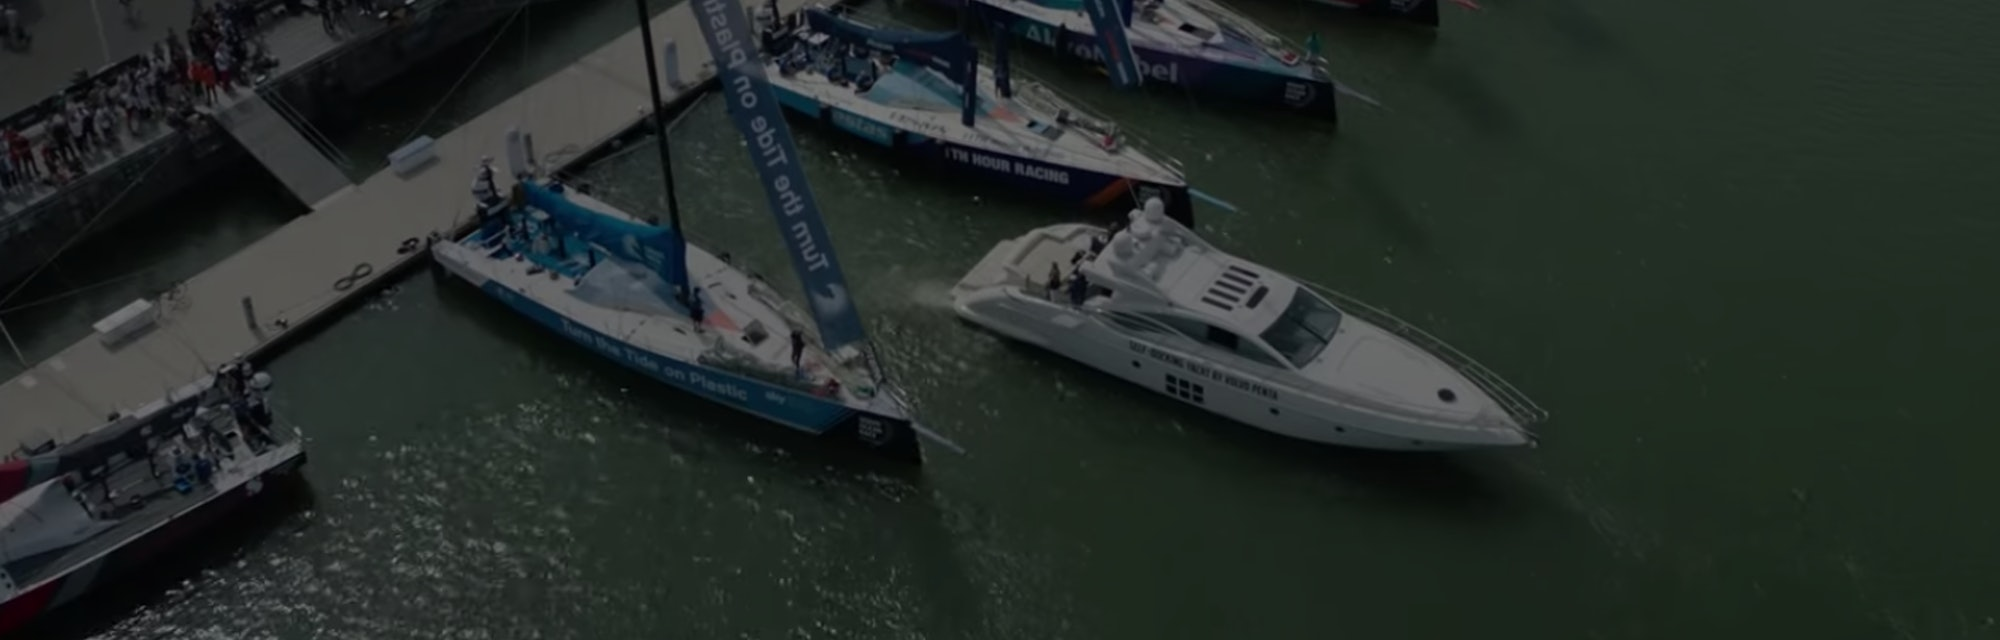 Volva Penta's Integrated Assisted Docking enables boats to dock autonomously.